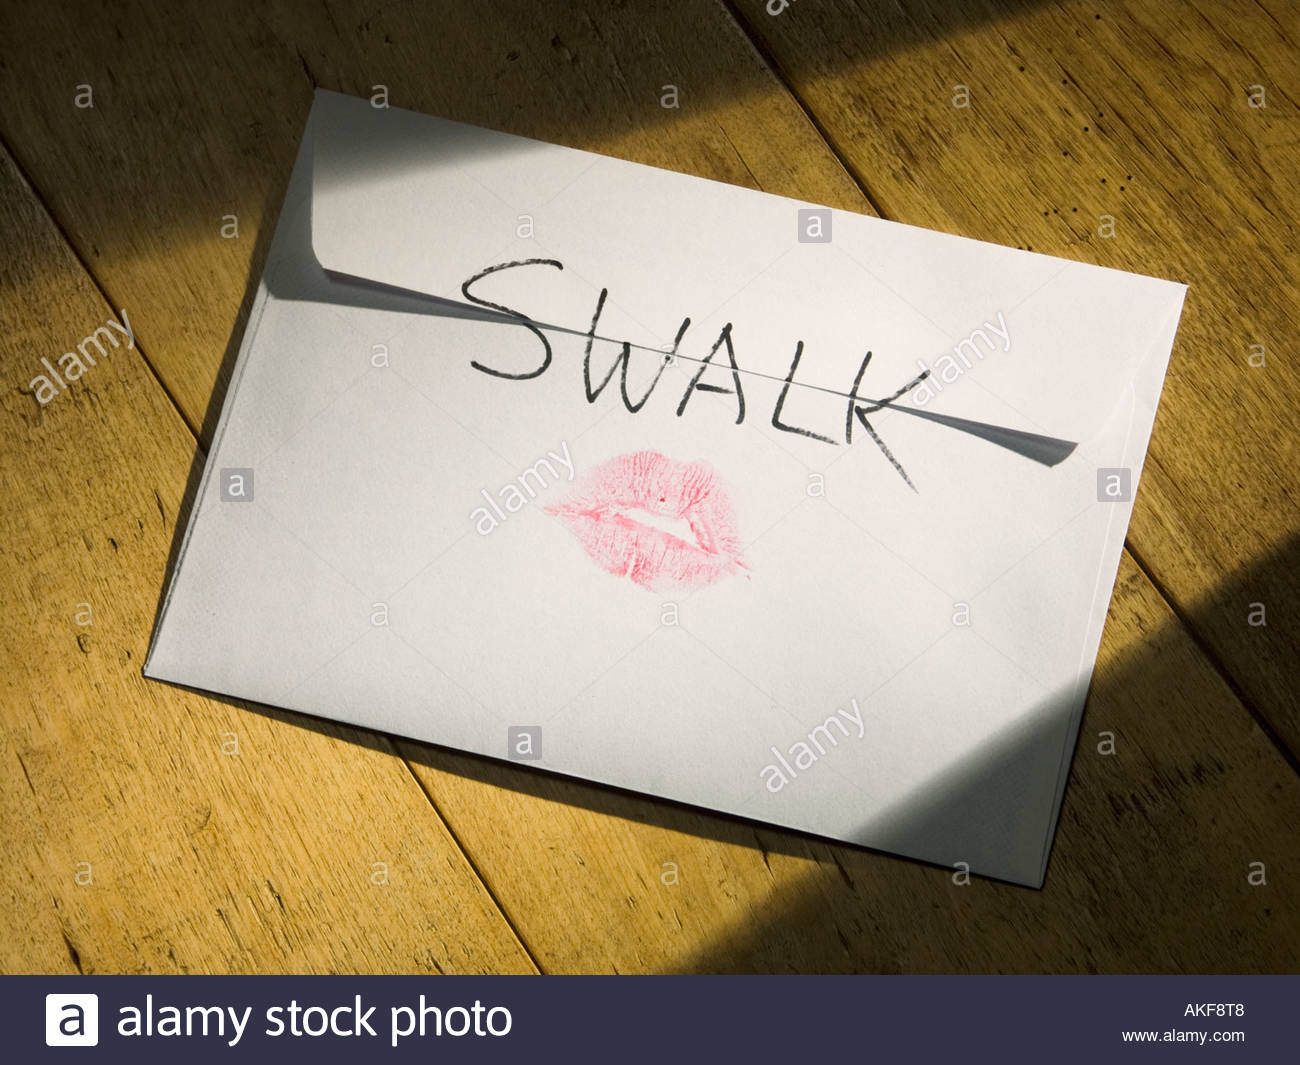 Attached picture an-envelope-with-swalk-sealed-with-a-loving-kiss-on-the-back-and-a-AKF8T8.jpg